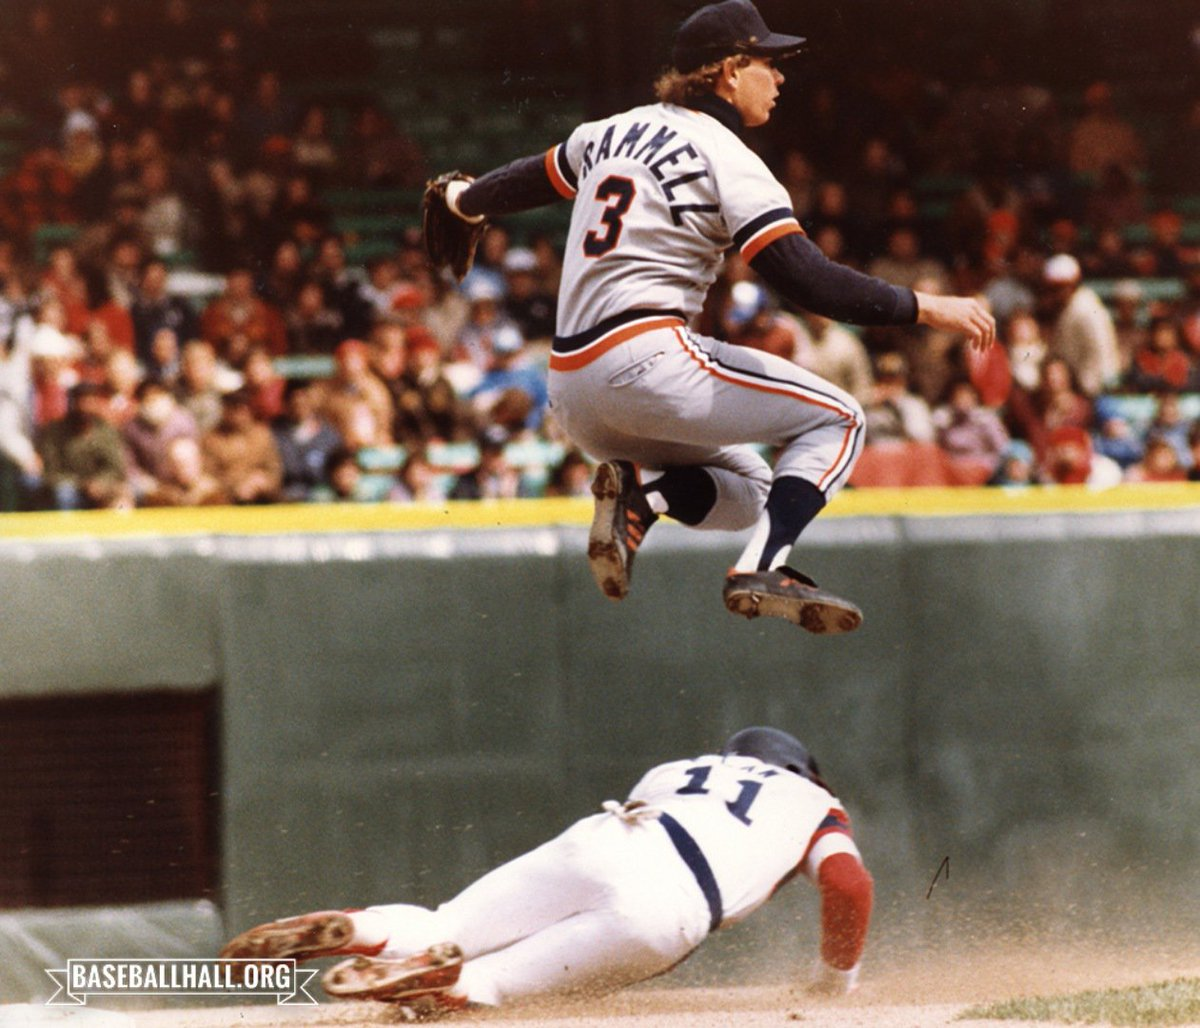 The first shortstop to post a season with at least a .340 batting average, 28 home runs and 100 RBI, and the face of the @tigers for two decades was born #OTD in 1958. Happy birthday, Alan Trammell! https://baseballhall.org/hof/trammell-alan…